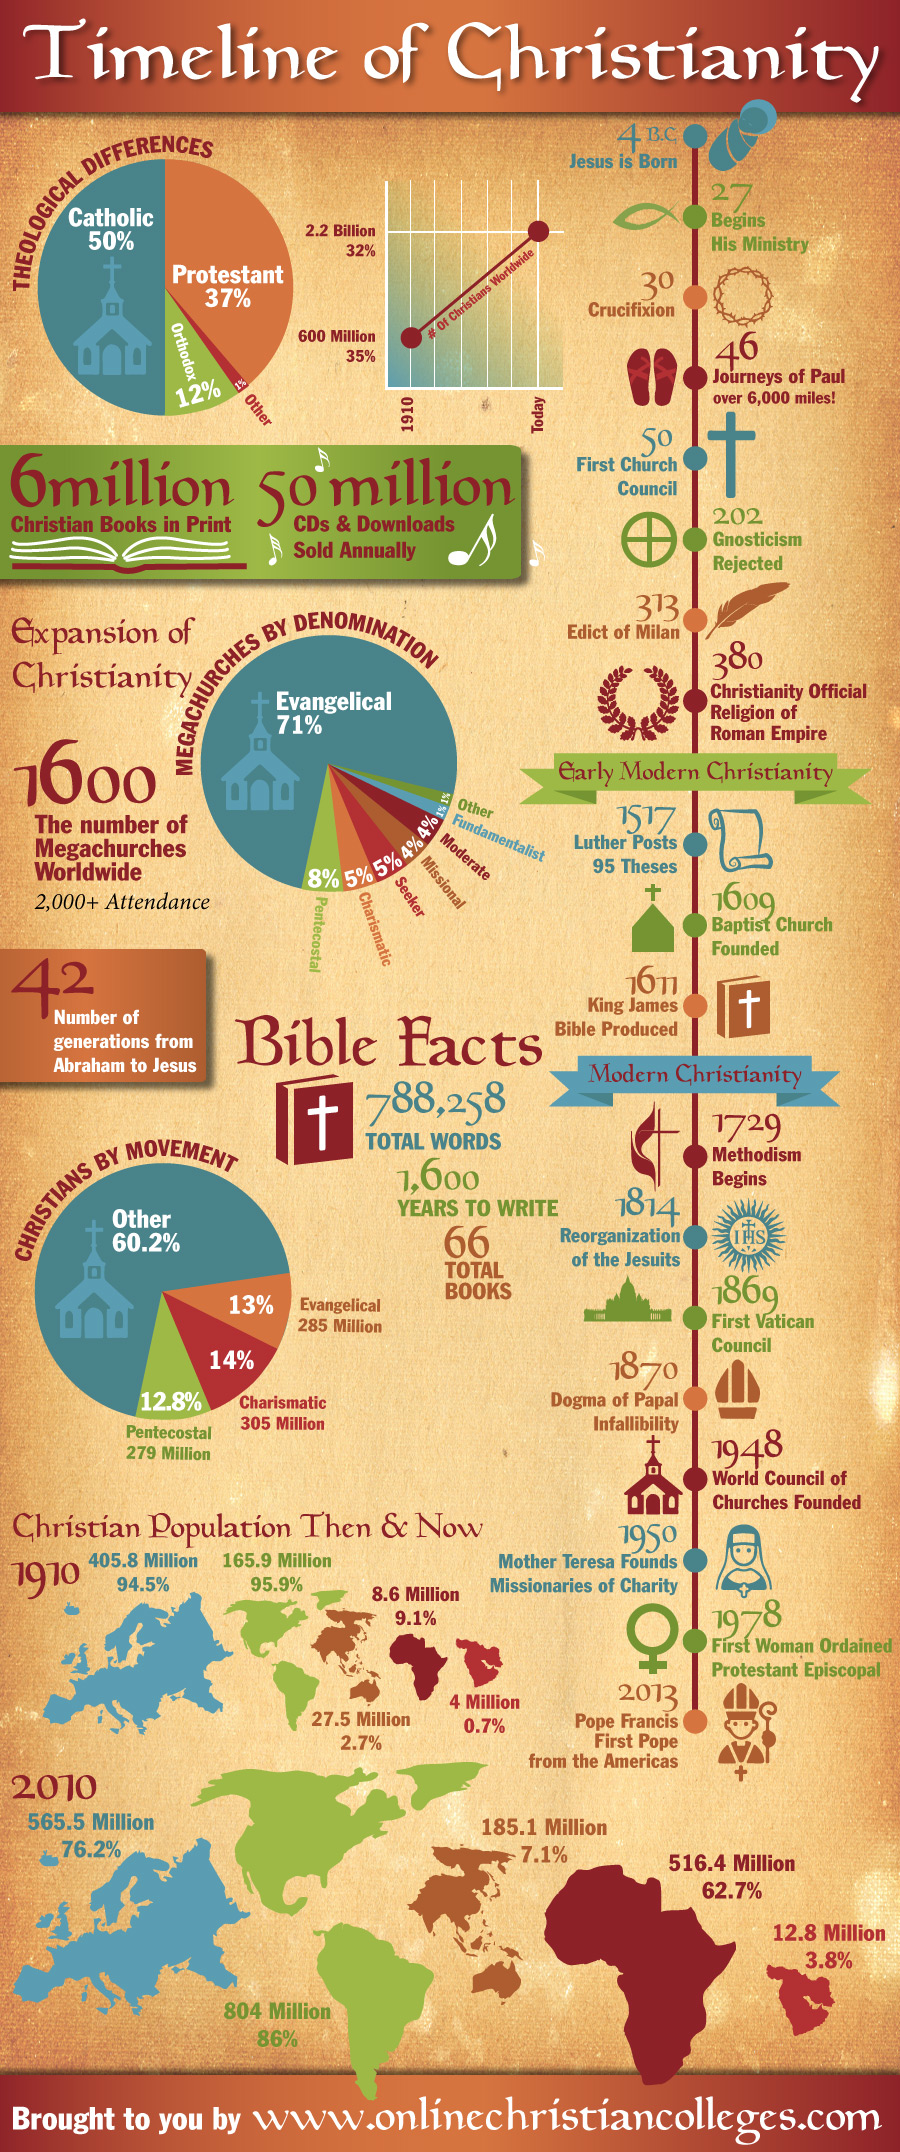 christianity-timeline